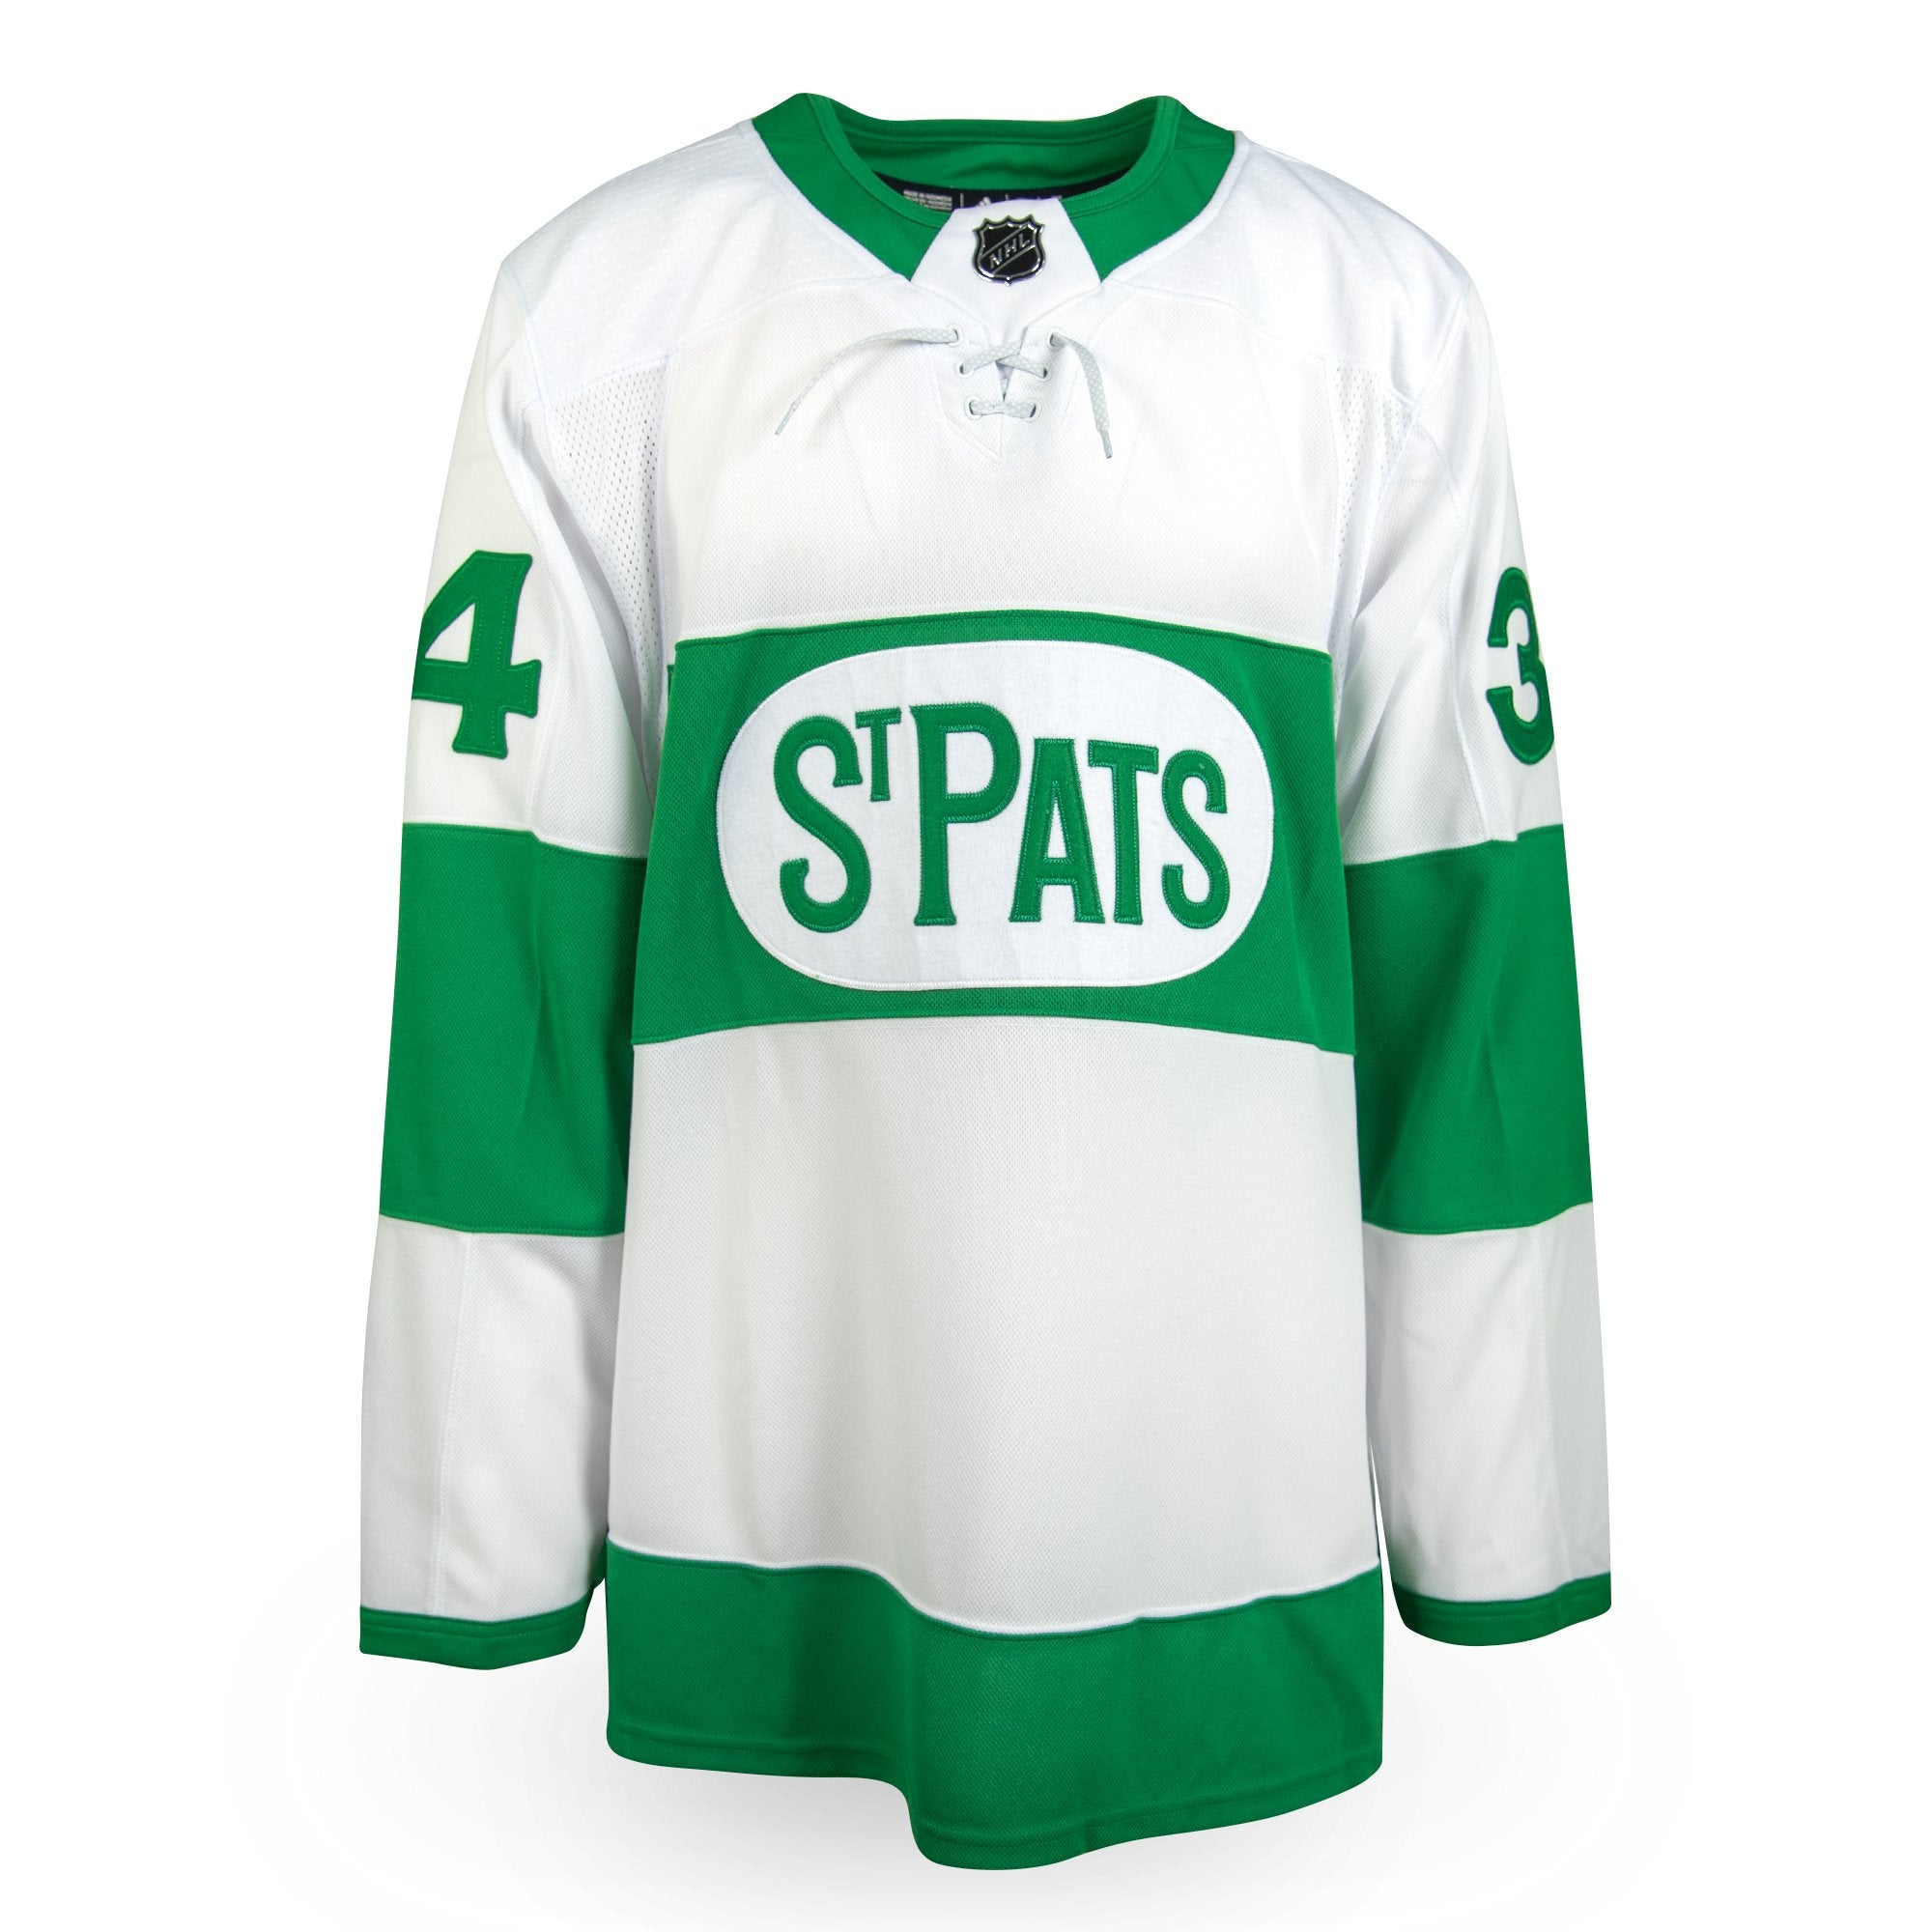 huge selection of 686b1 ecef3 Auston Matthews Adidas Authentic St. Pats Jersey – Prime 1 ...